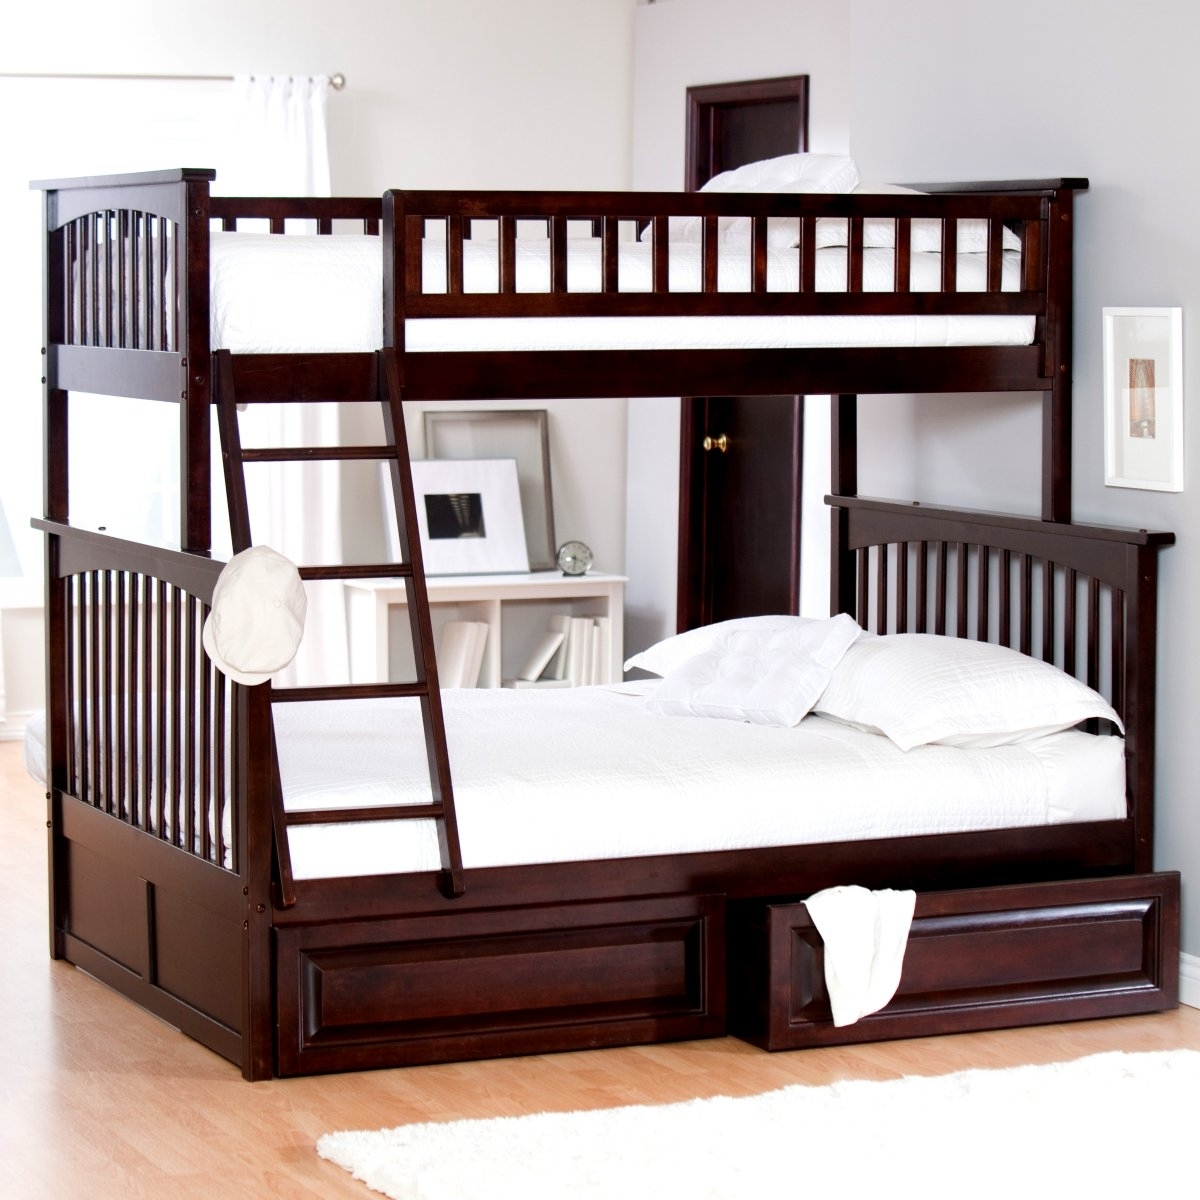 Wood Bunk Beds Twin over Queen